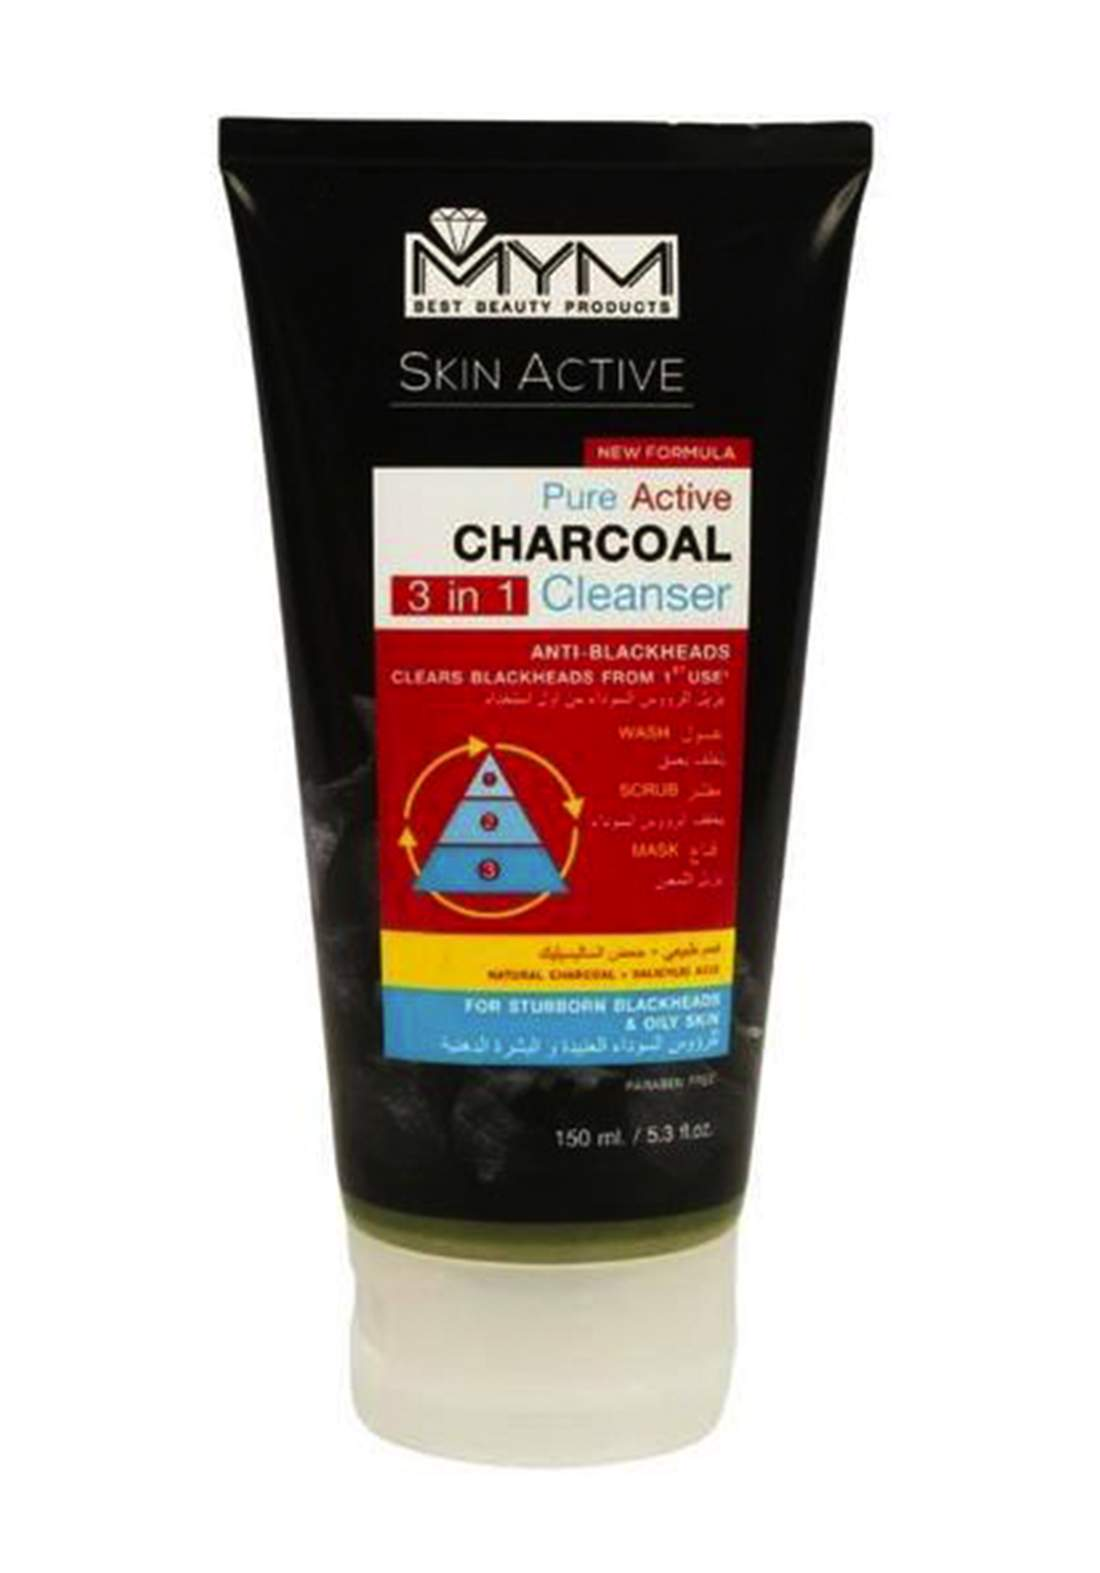 Mym Pure Active Charcoal Cleanser 3in1 150ml منظف للبشرة